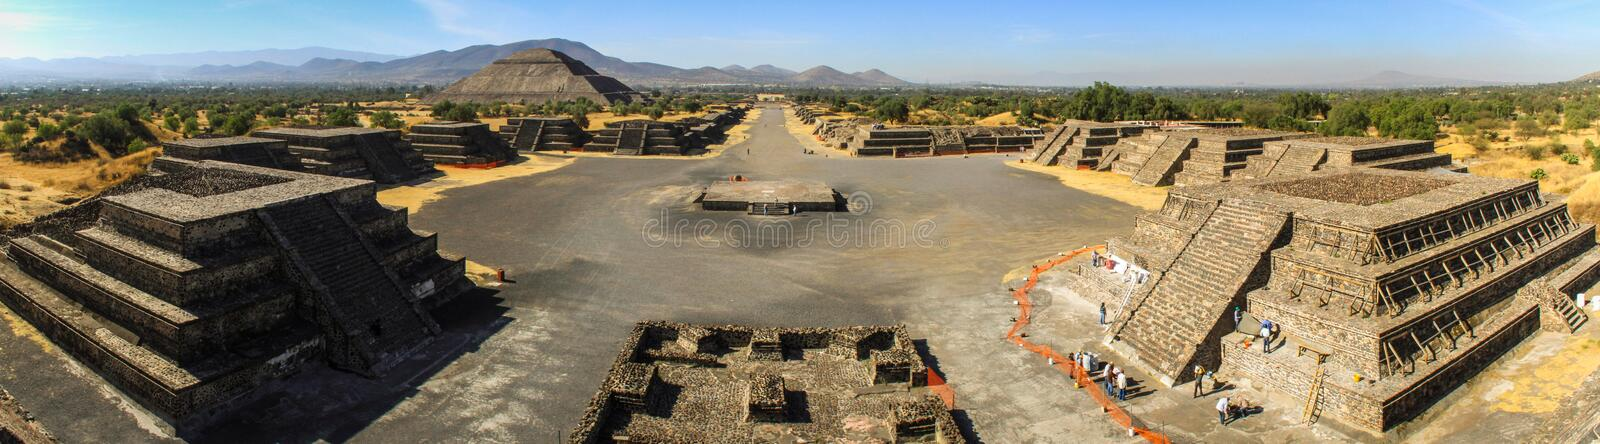 Panoramic view of the Teotihuacan Site from the moon pyramid, Teotihuacan, Mexico stock image